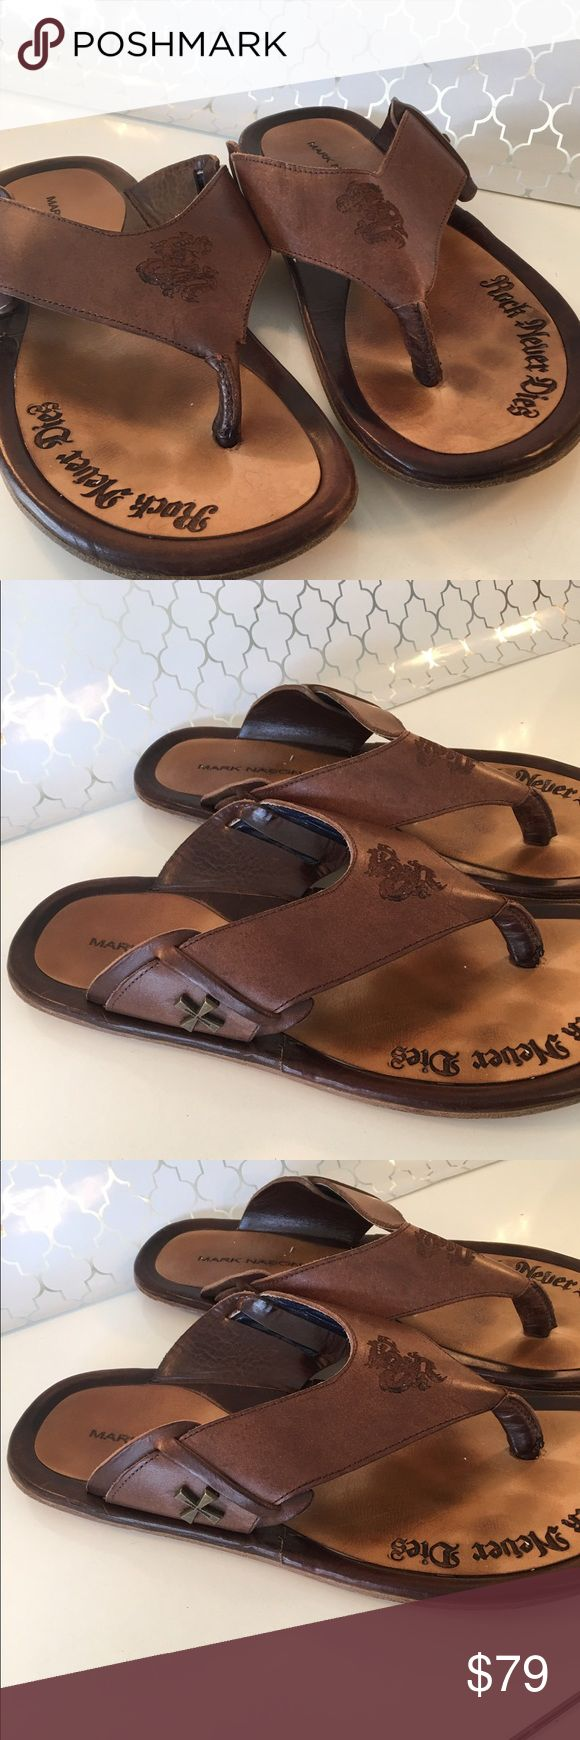 ⭐️MARK NASON DRAGON MENS SANDALS 💯AUTHENTIC MARK NASON MENS DRAGON SANDALS MADE IN ITALY 100% AUTHENTIC. TRUE HIGH END QUALITY AND STYLE. AMAZING SHOES. They are a size 10 MARK NASON Shoes Sandals & Flip-Flops